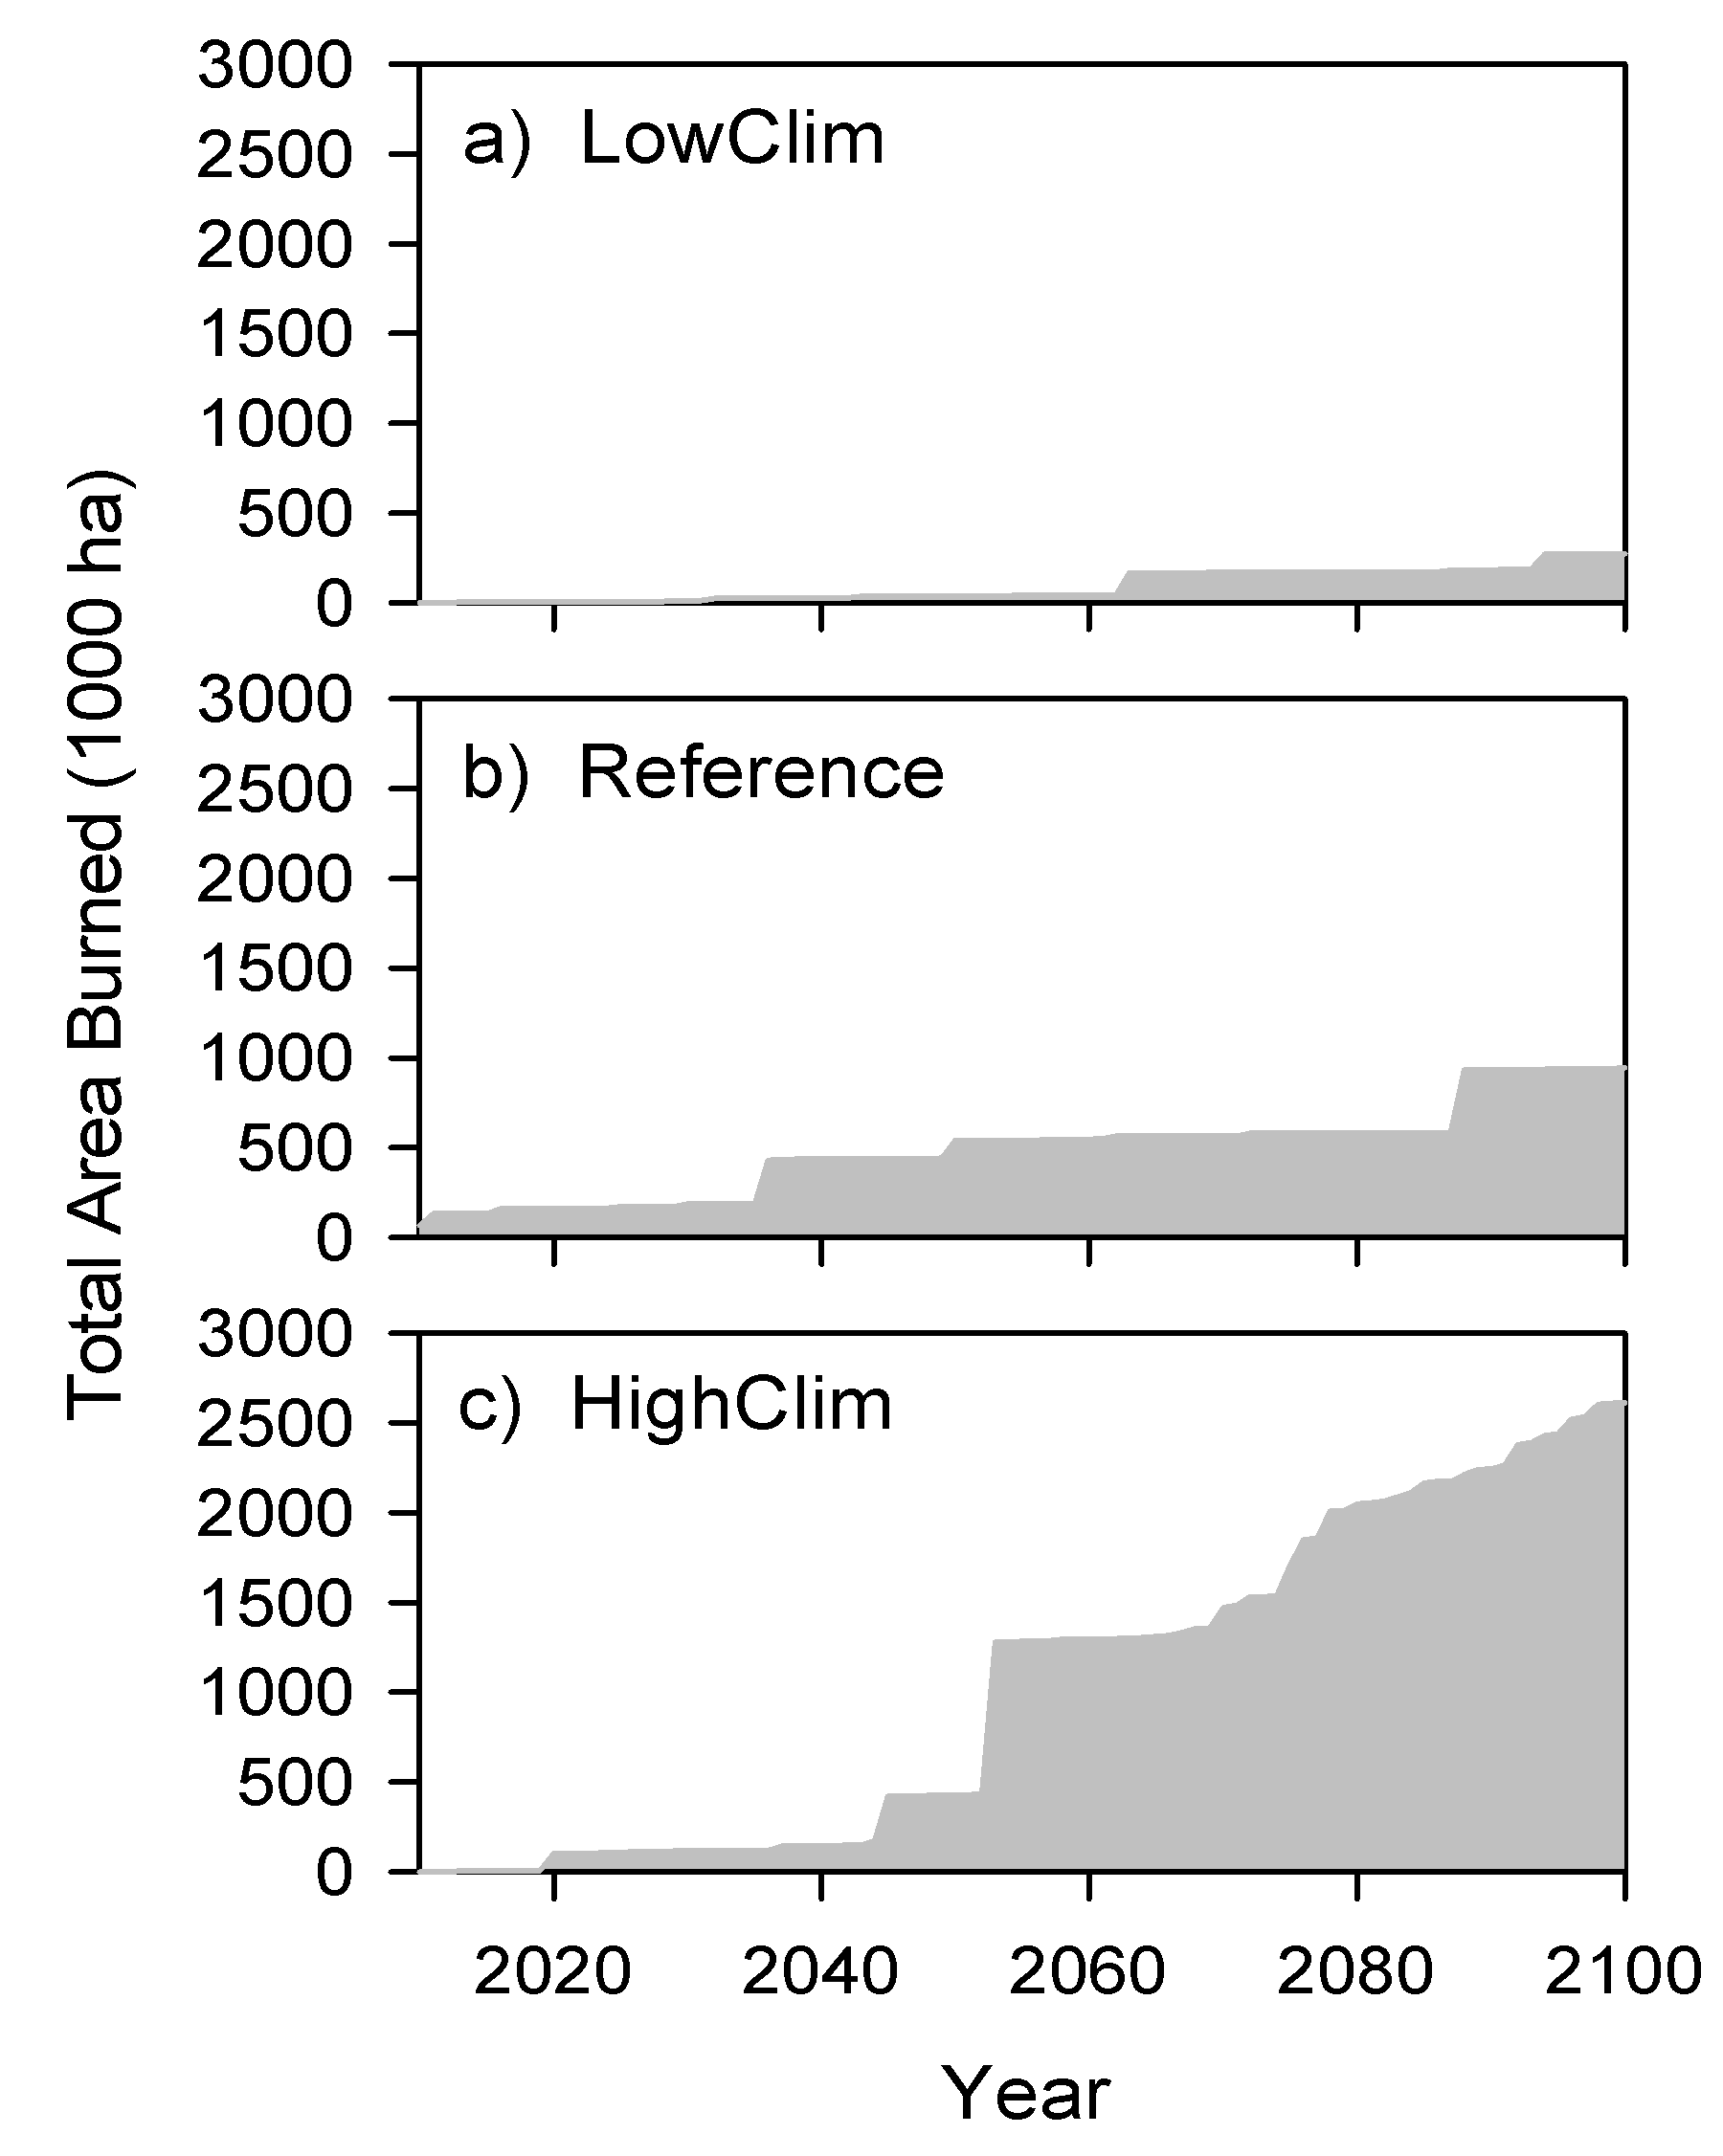 Figure 2. Area burned per year in the three climate scenarios.